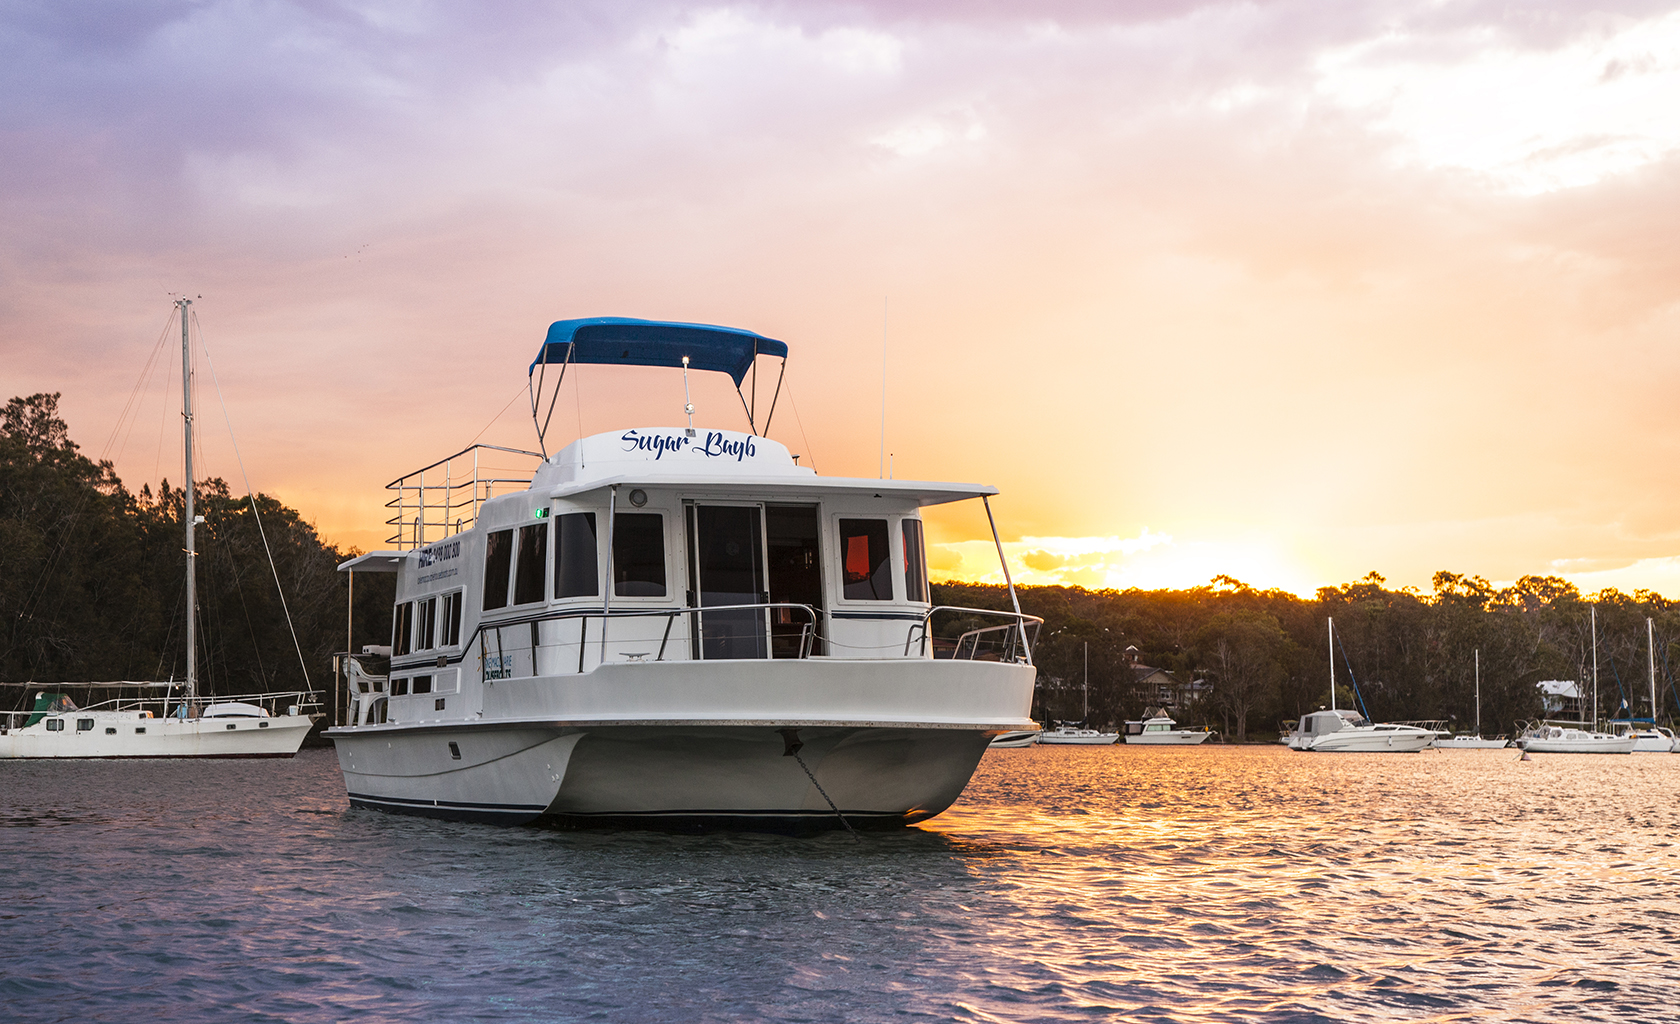 A houseboat at Lake Macquarie, NSW